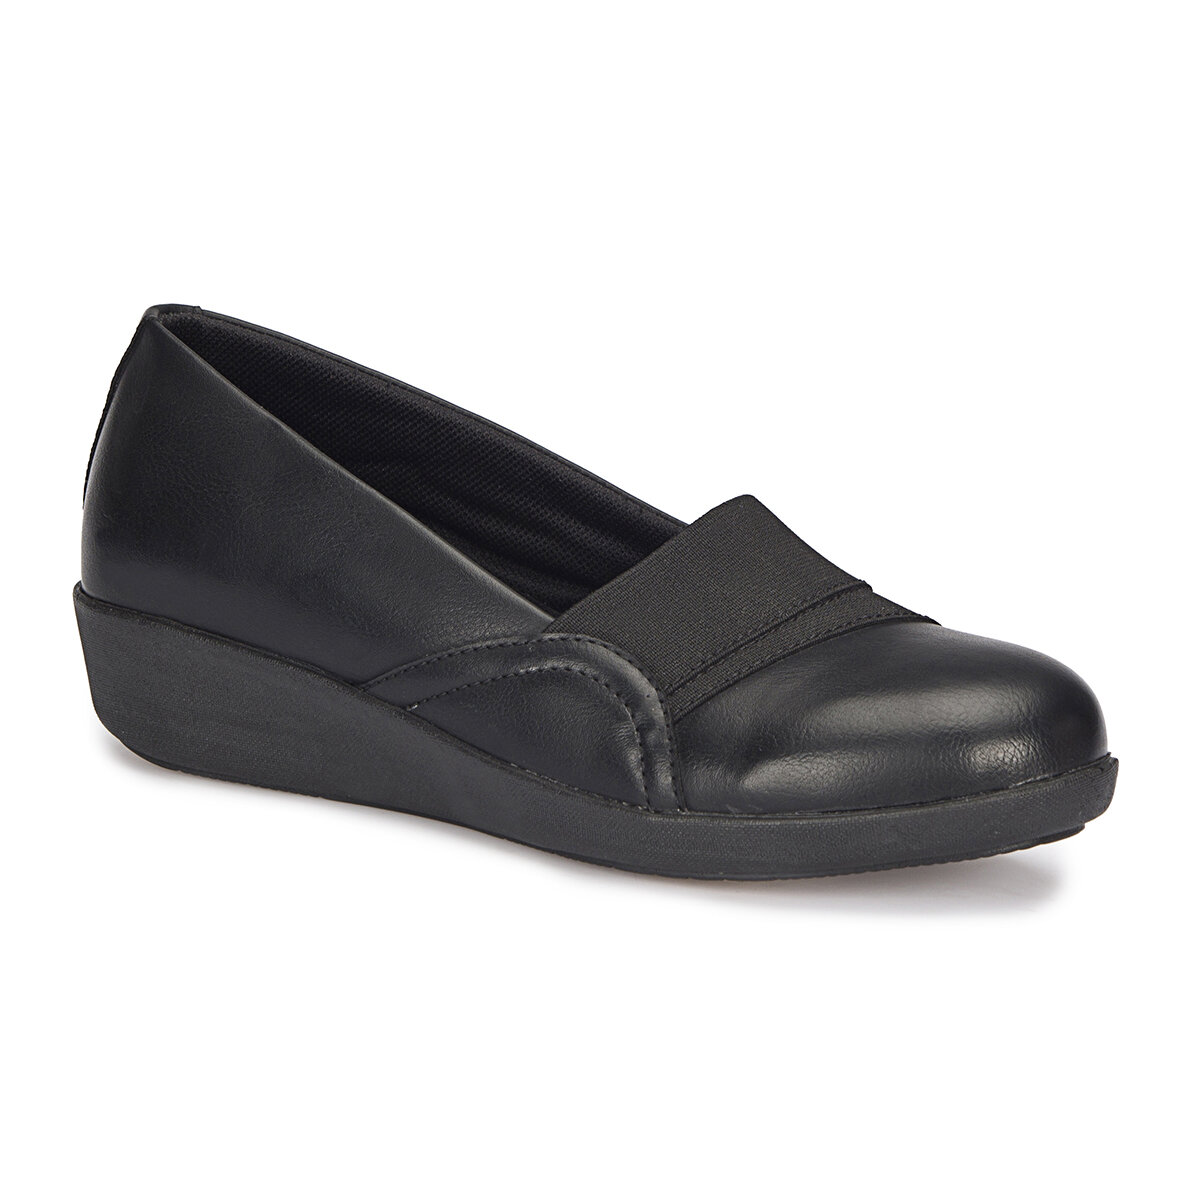 FLO 72.110026CZ Black Women Shoes Polaris